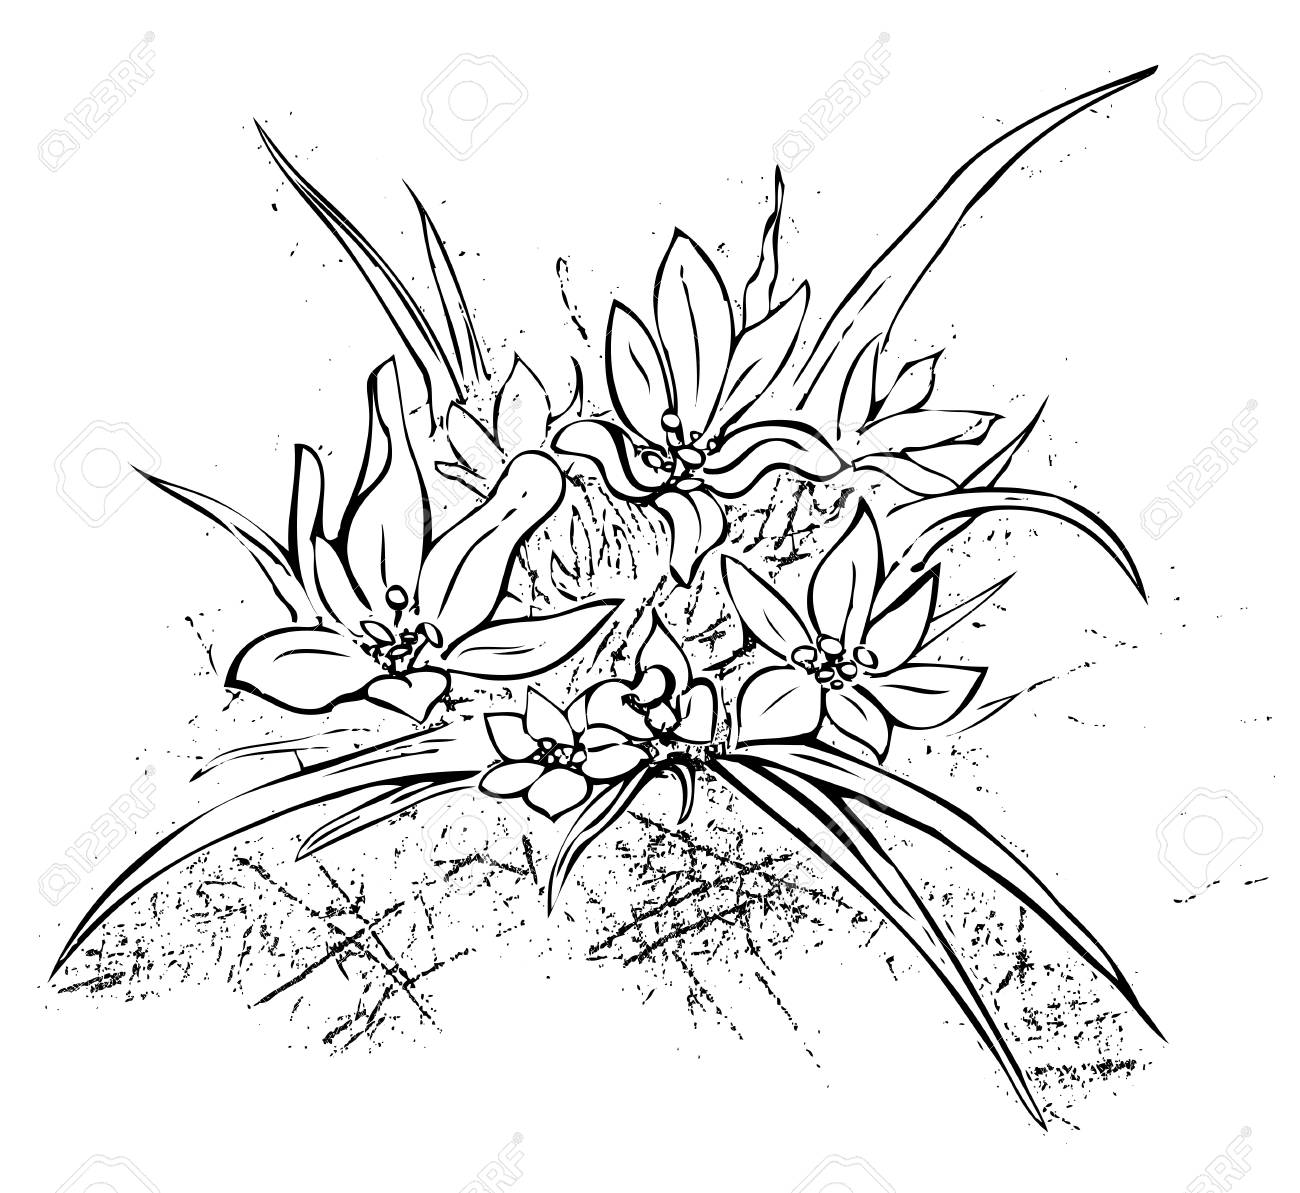 1300x1193 Edelweiss Simple Hand Drawn Illustration. Royalty Free Cliparts